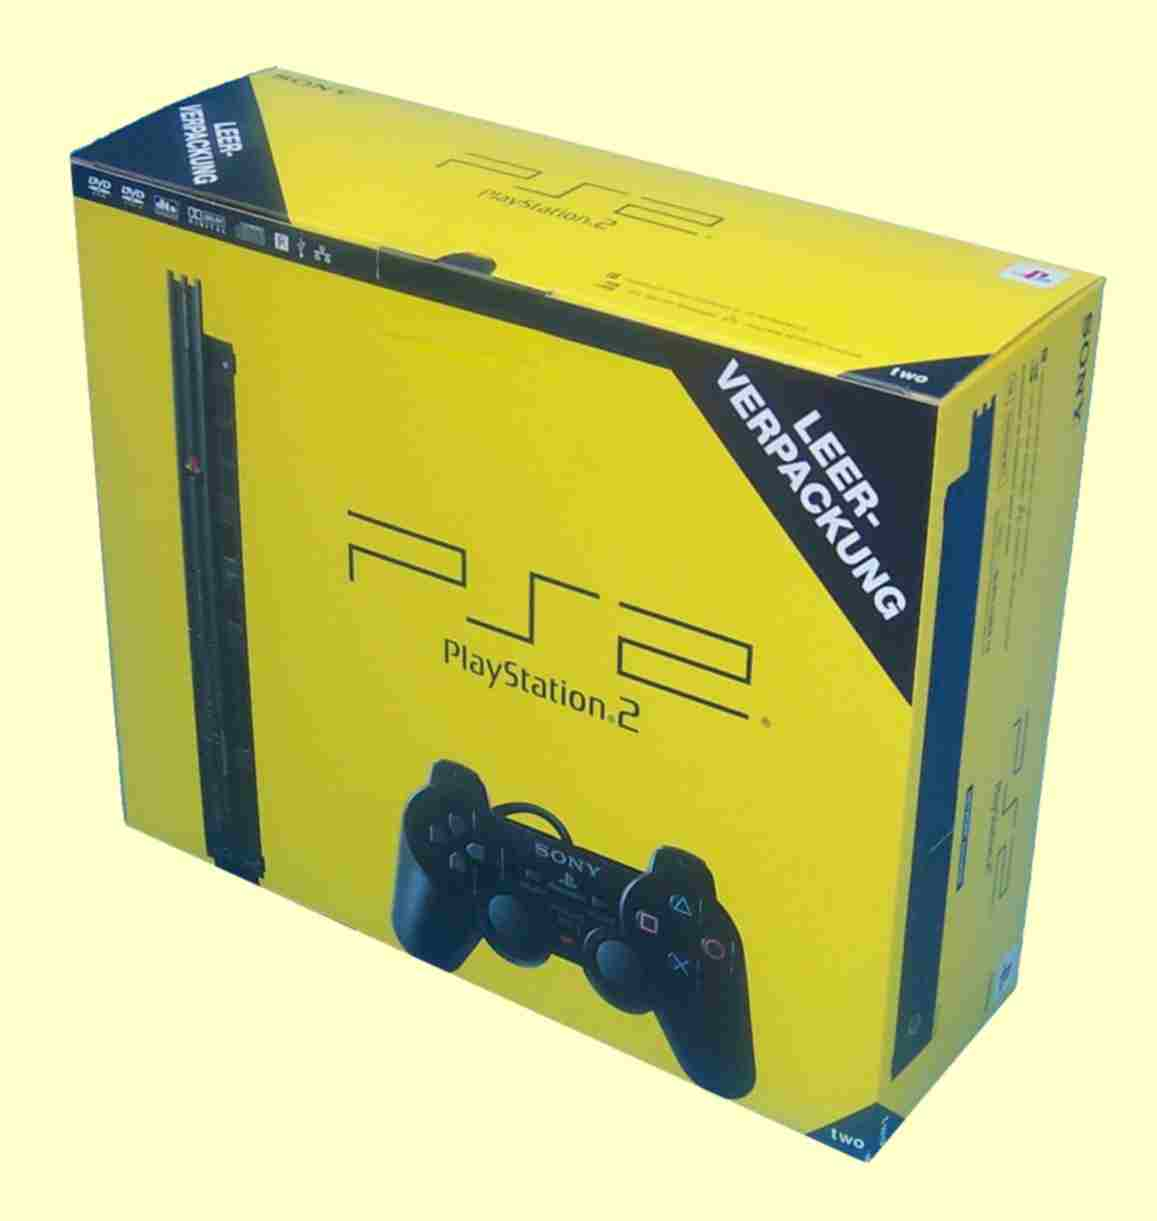 Sony-PS2-Leerbox_002-frei-a